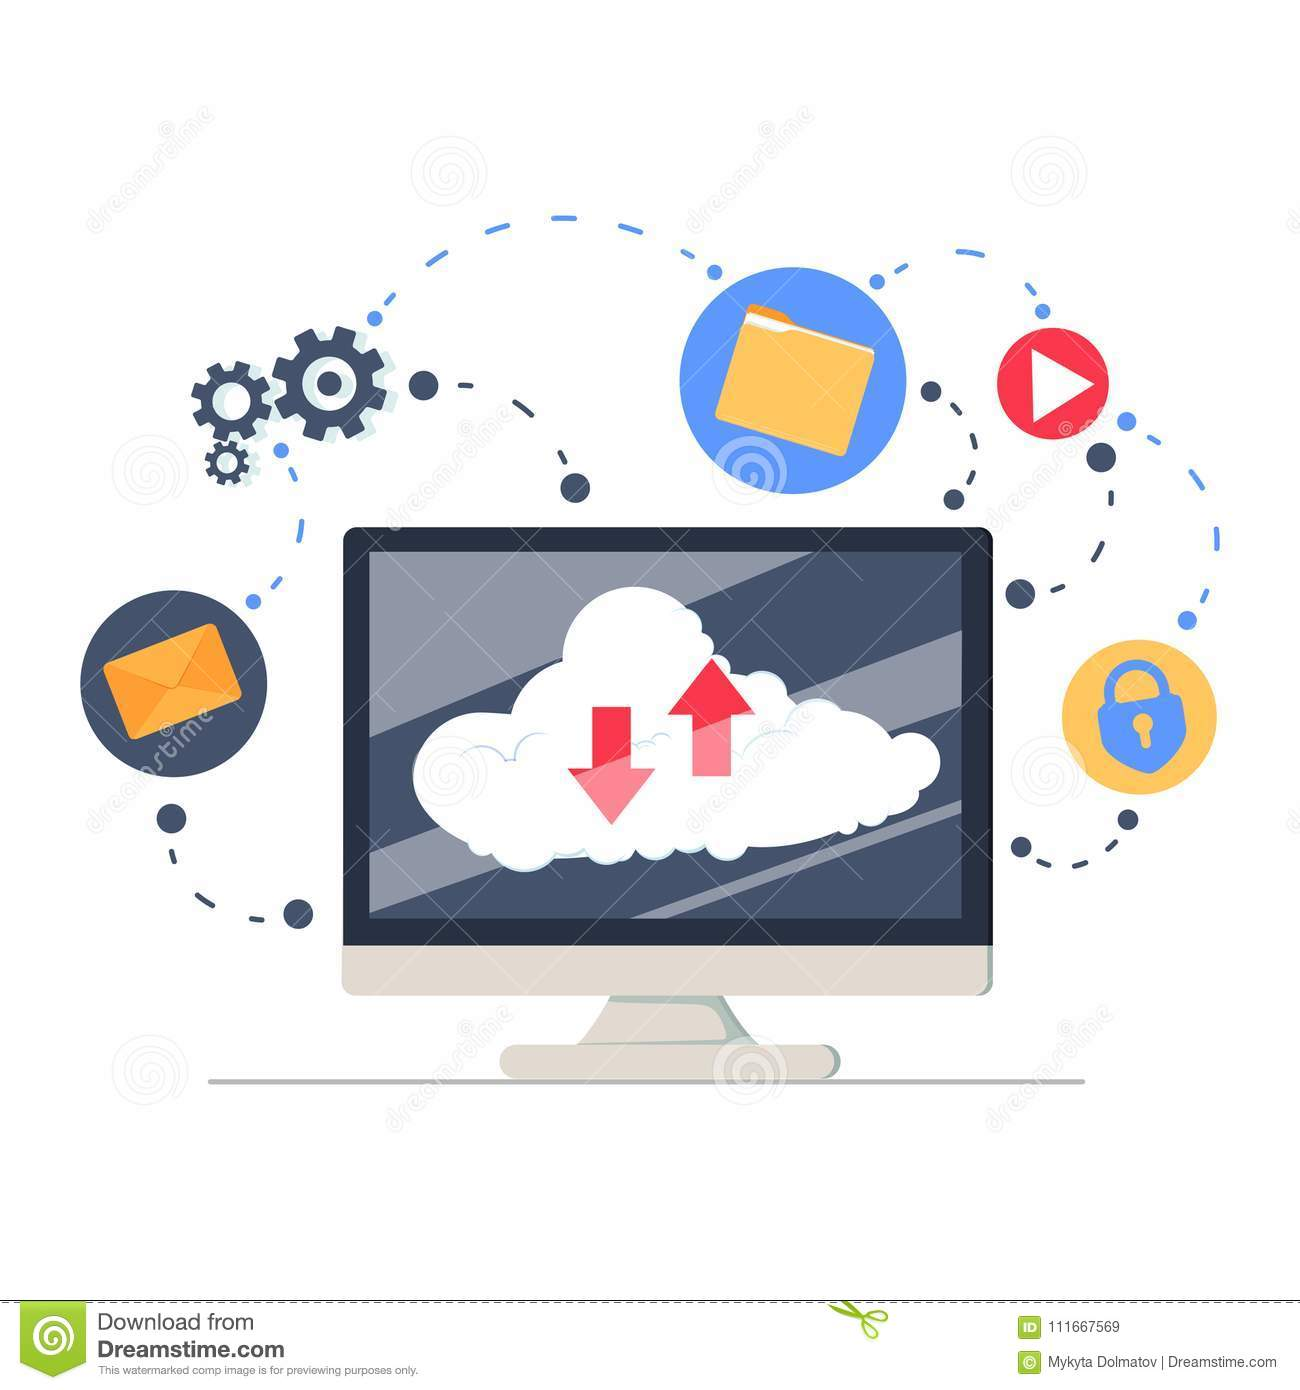 Cloud Services And Technology, Storage Solution, Data Exchange, Online  Network Concept. Flat Illustration. Network Data Storage Online Database  With Files, ...